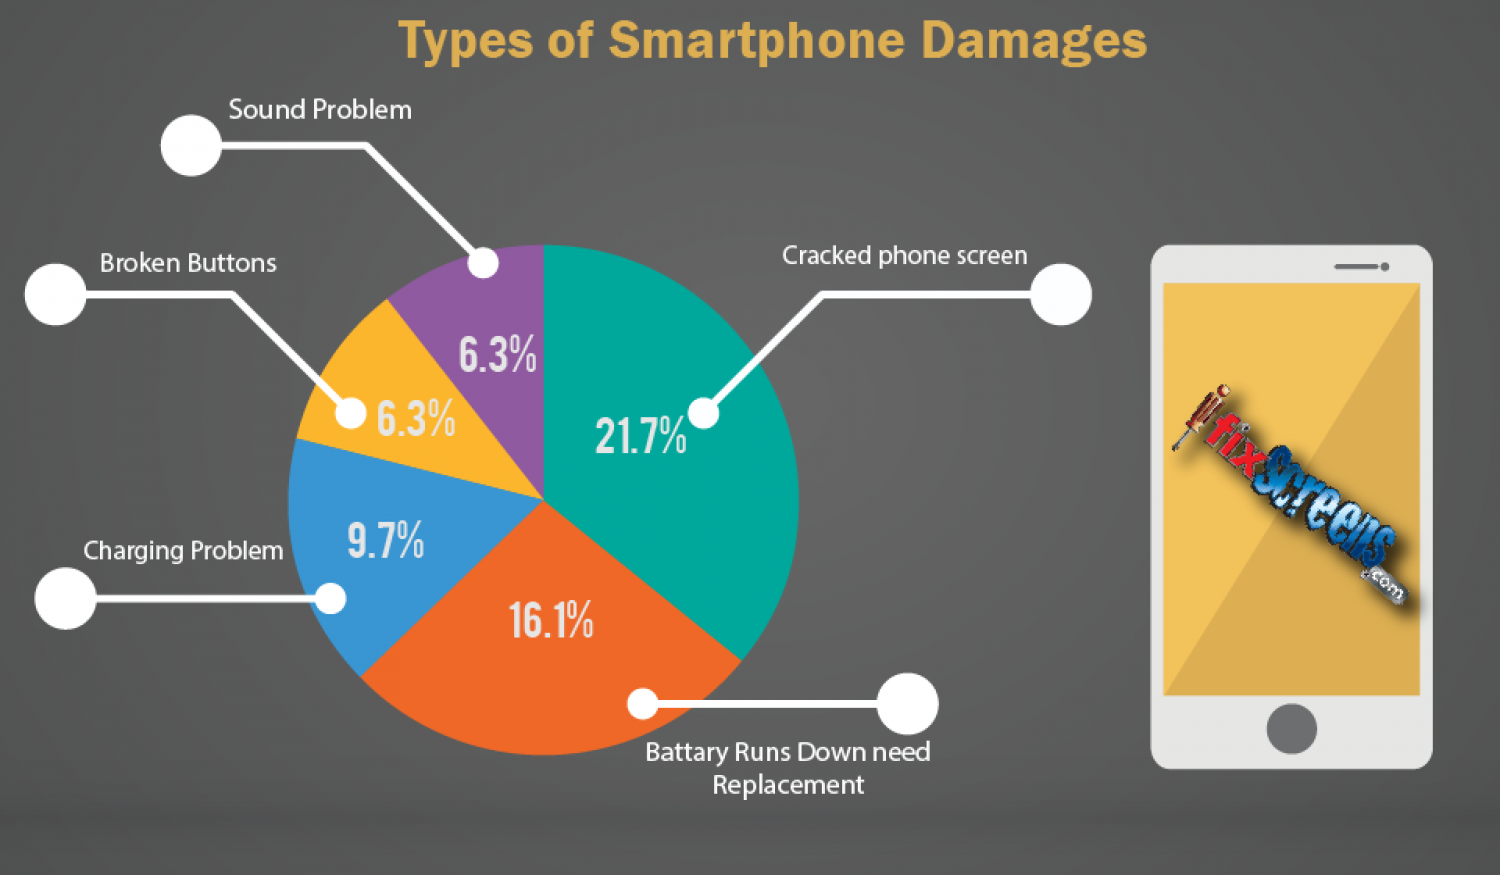 Smartphones Damages Types Infographic